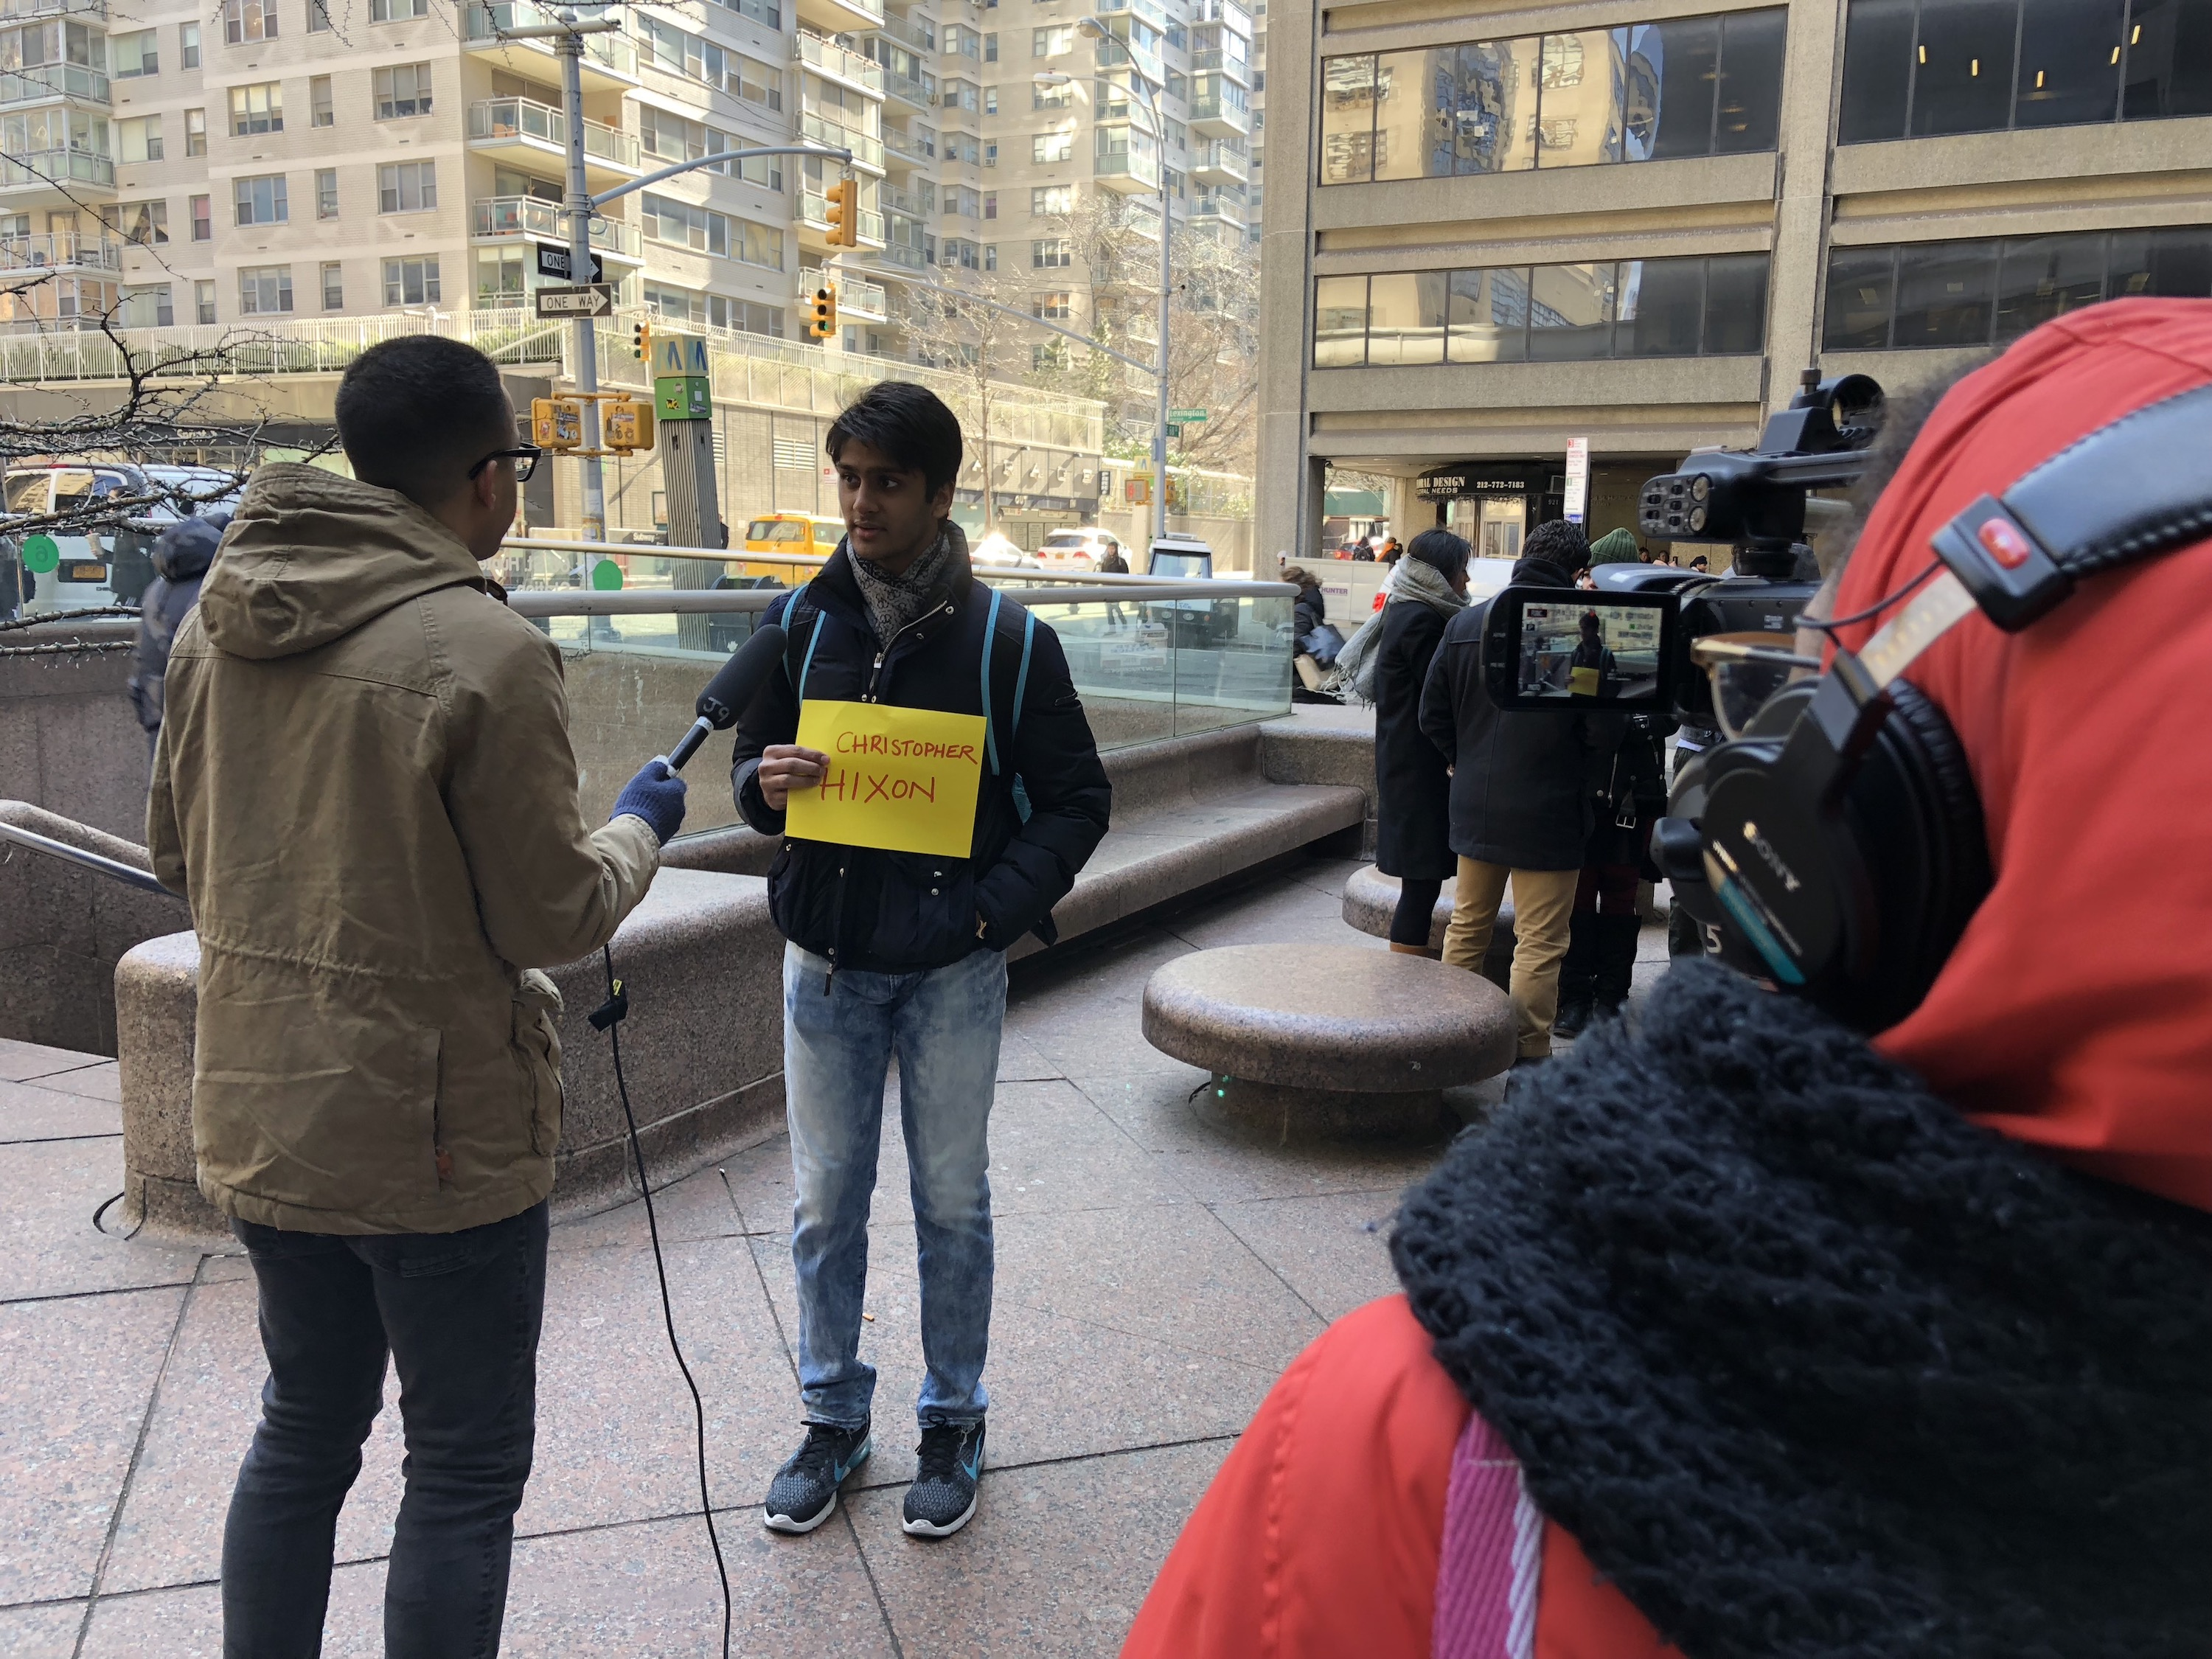 Hunter News Now student Victor Tiburcio Jr. on the scene covering the Hunter College walkout to protest gun violence and remember the victims of of Parkland Florida on March 14, 2018.